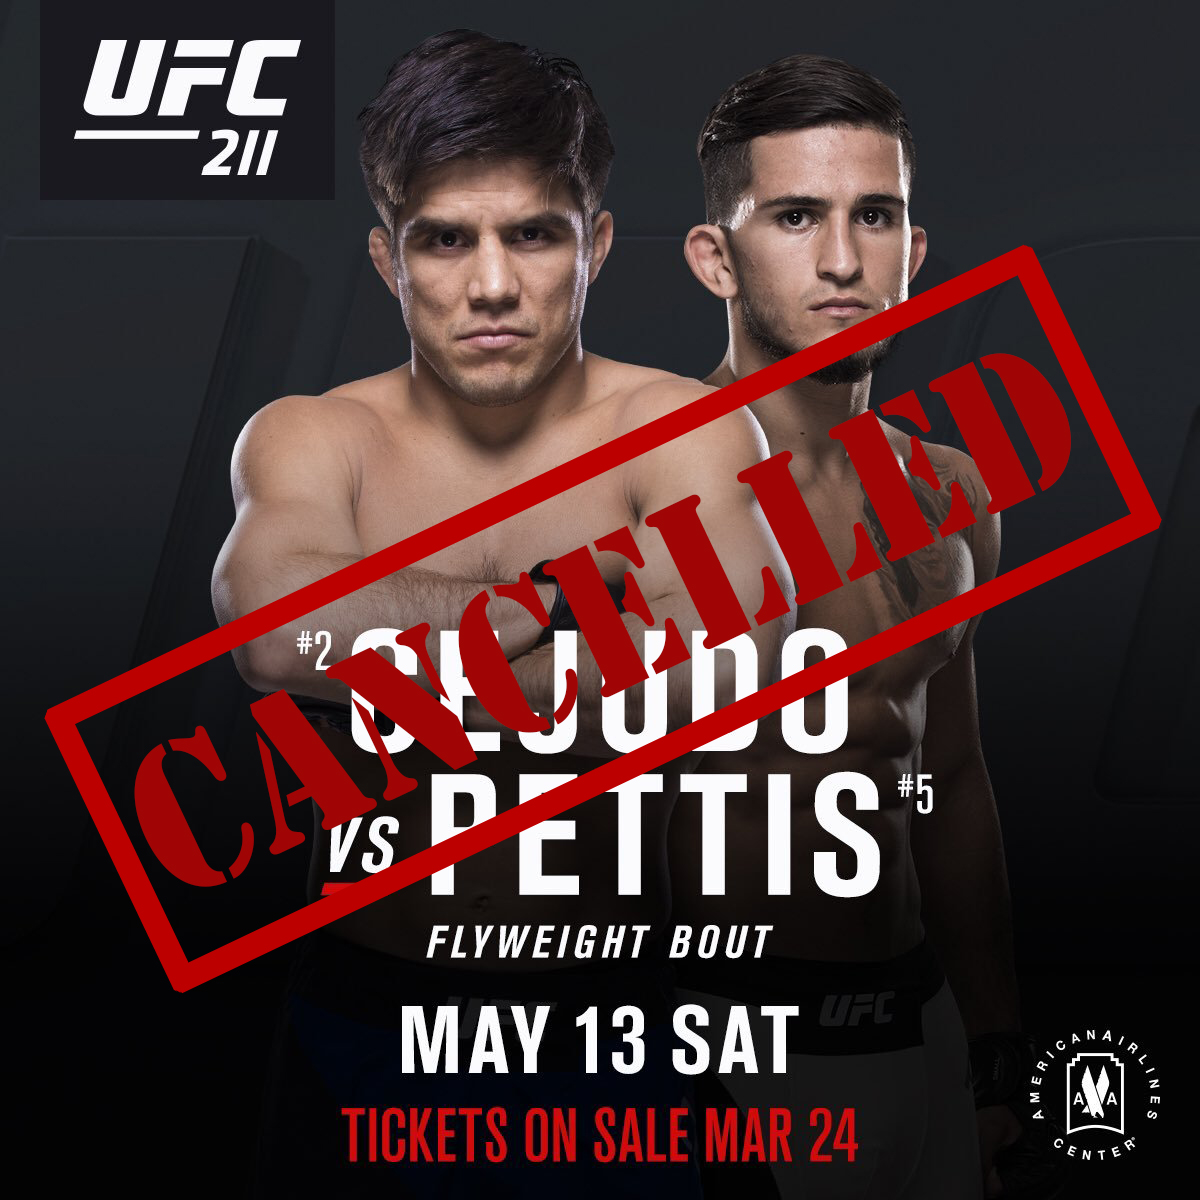 Sergio Pettis vs. Henry Cejudo fight called off after Cejudo fractures hand -